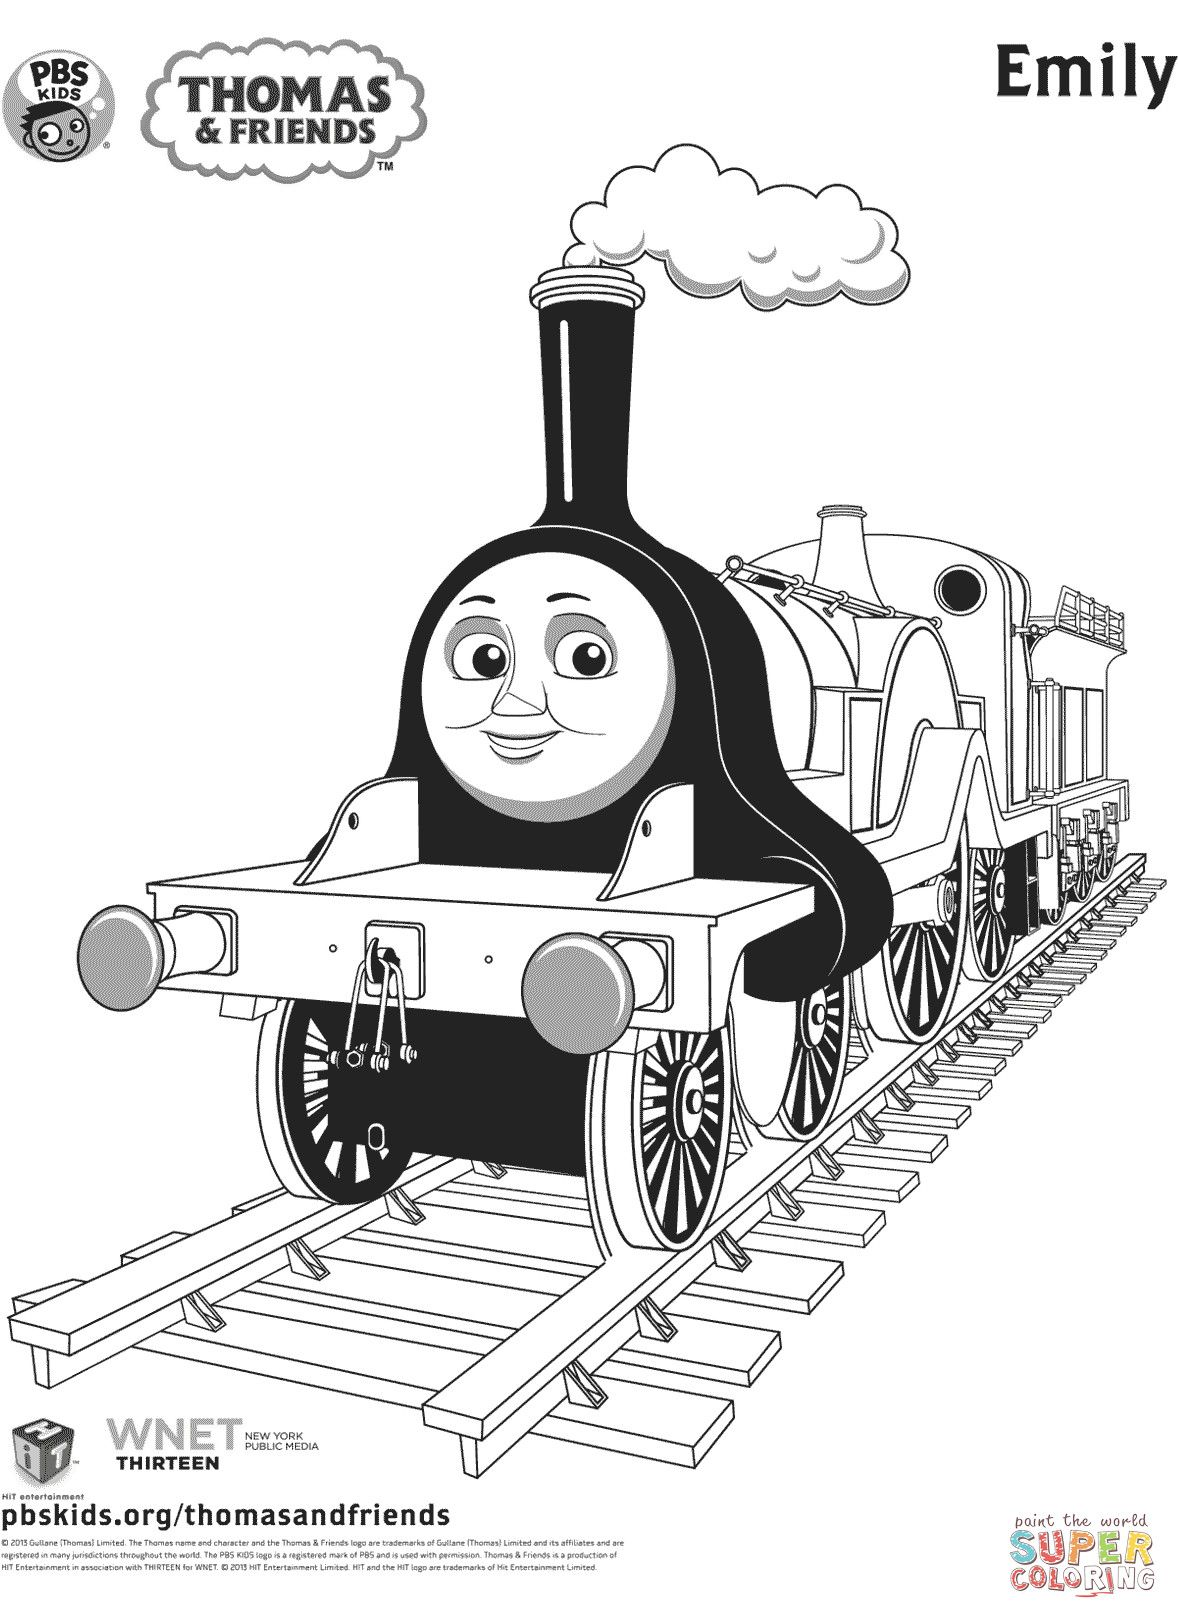 28 Awesome Thomas the Train Coloring Pages in 2020 Train